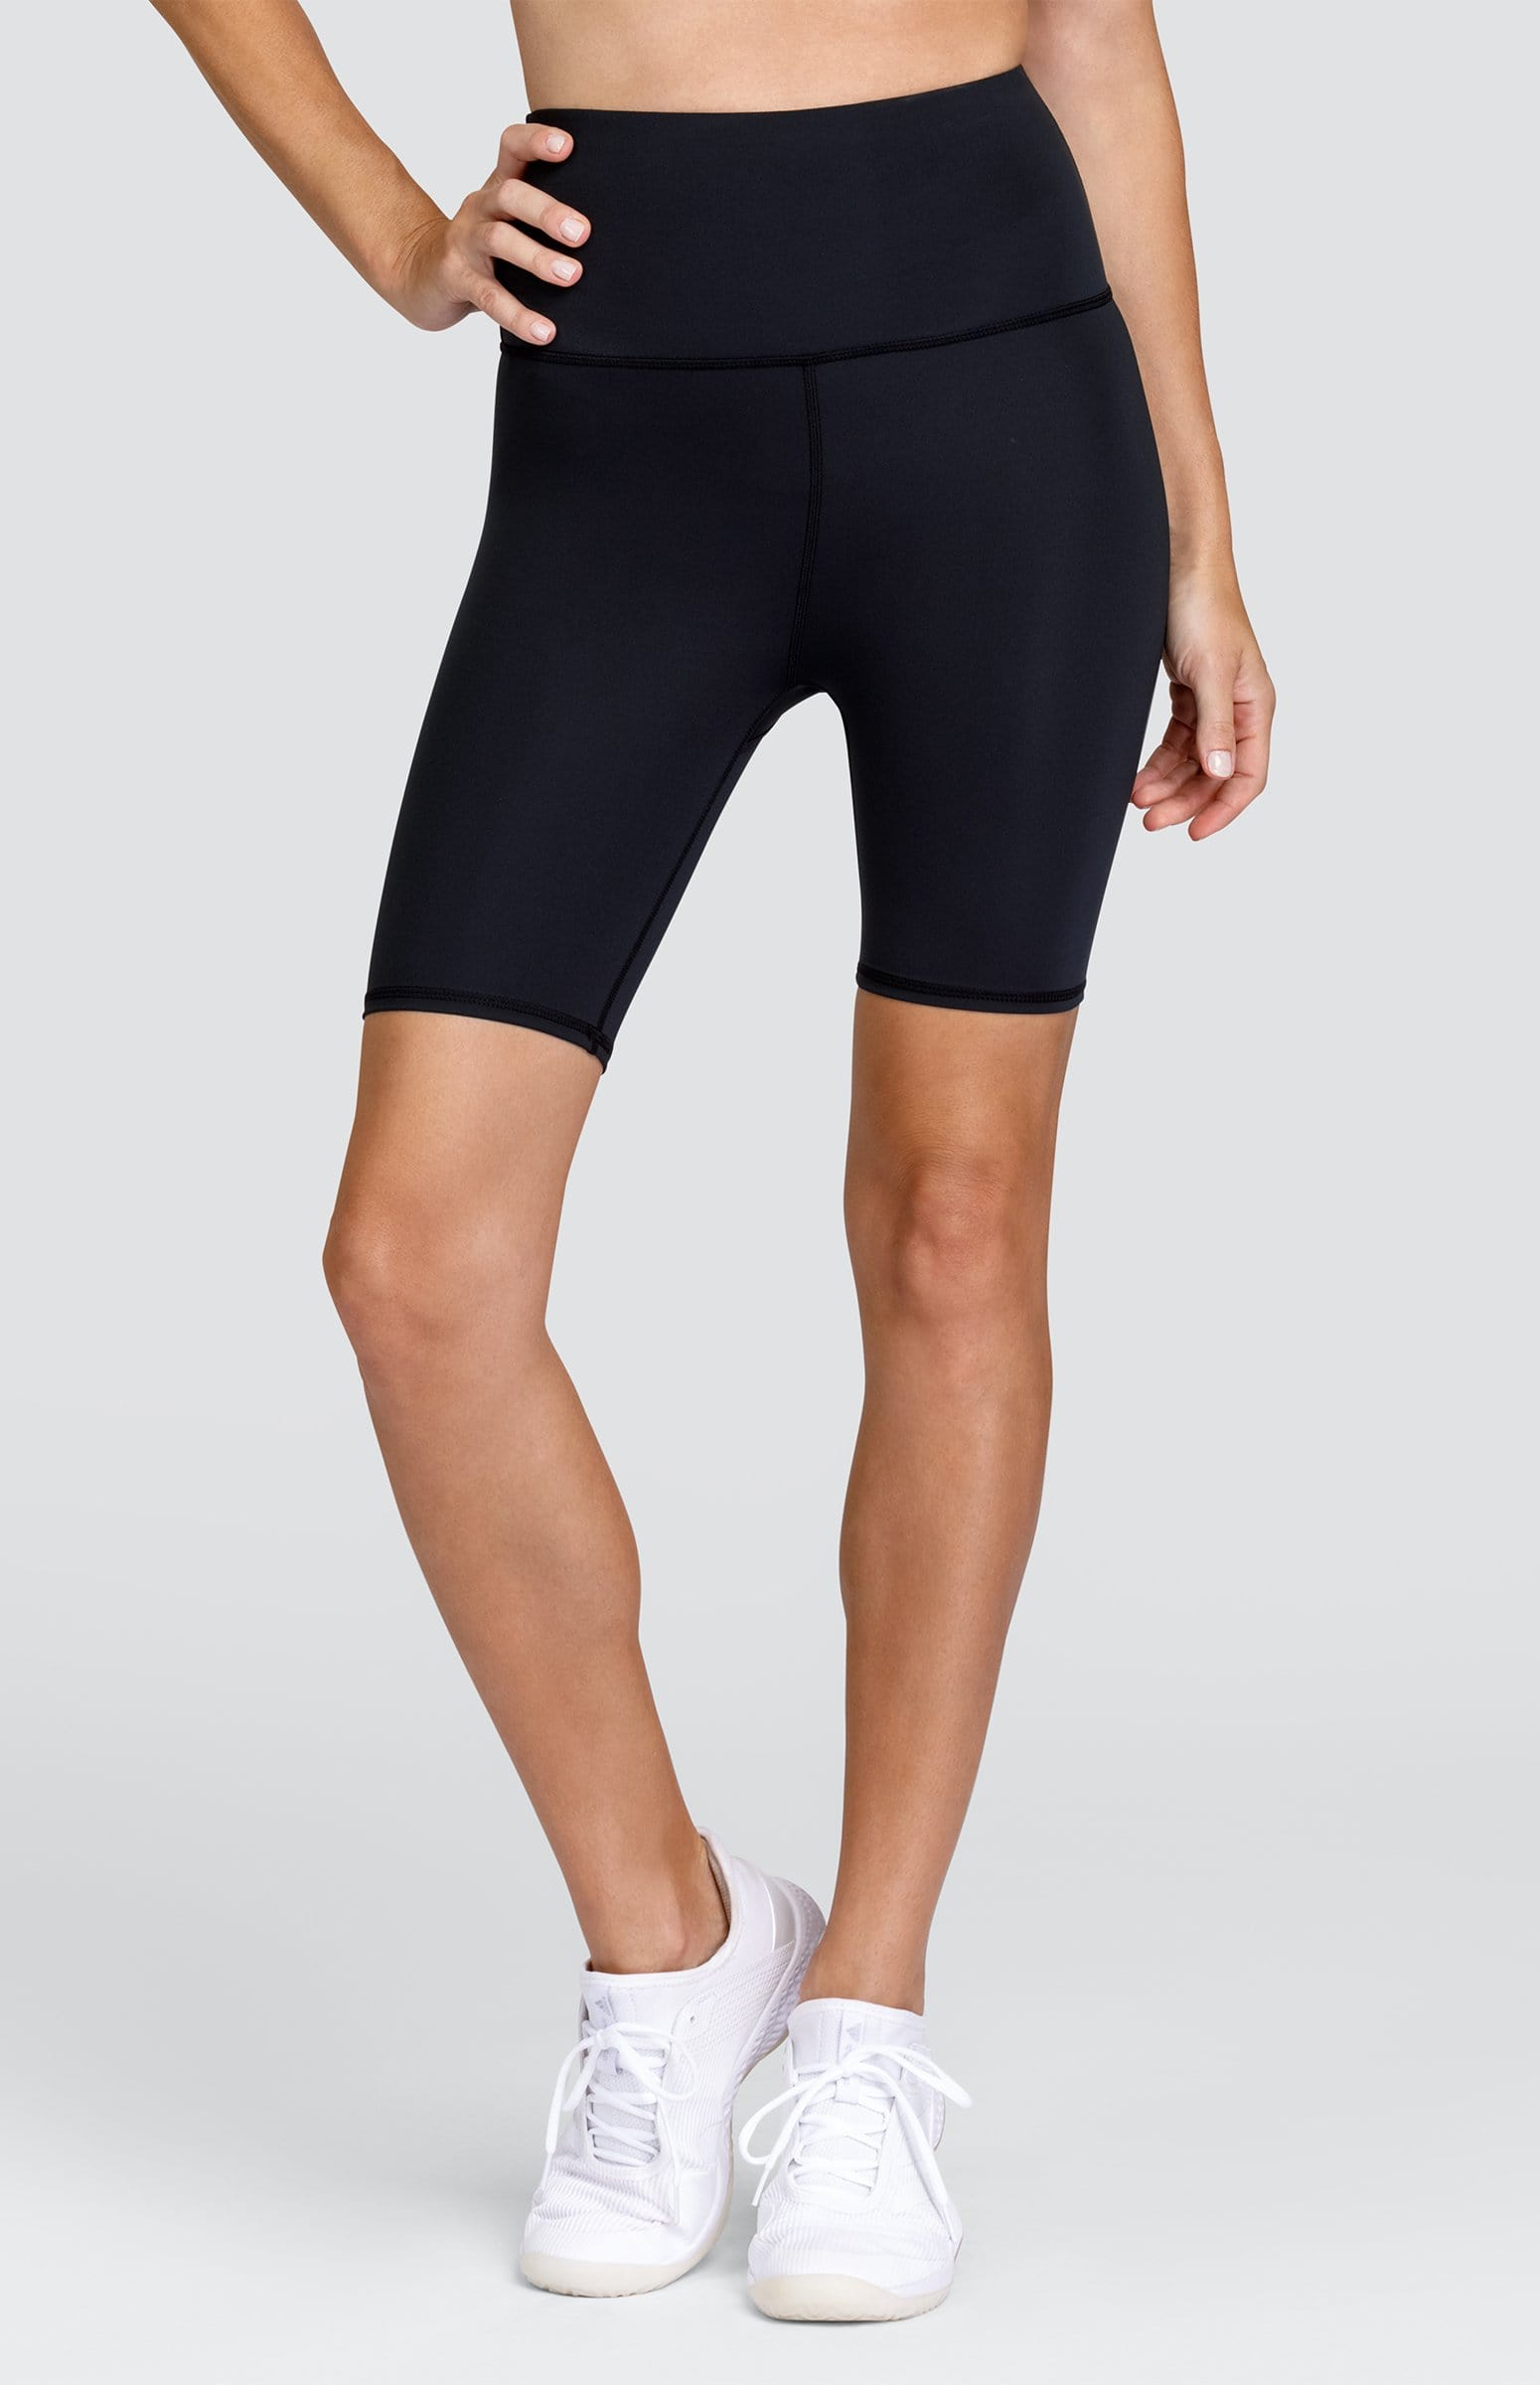 Seben Compression Short - Onyx